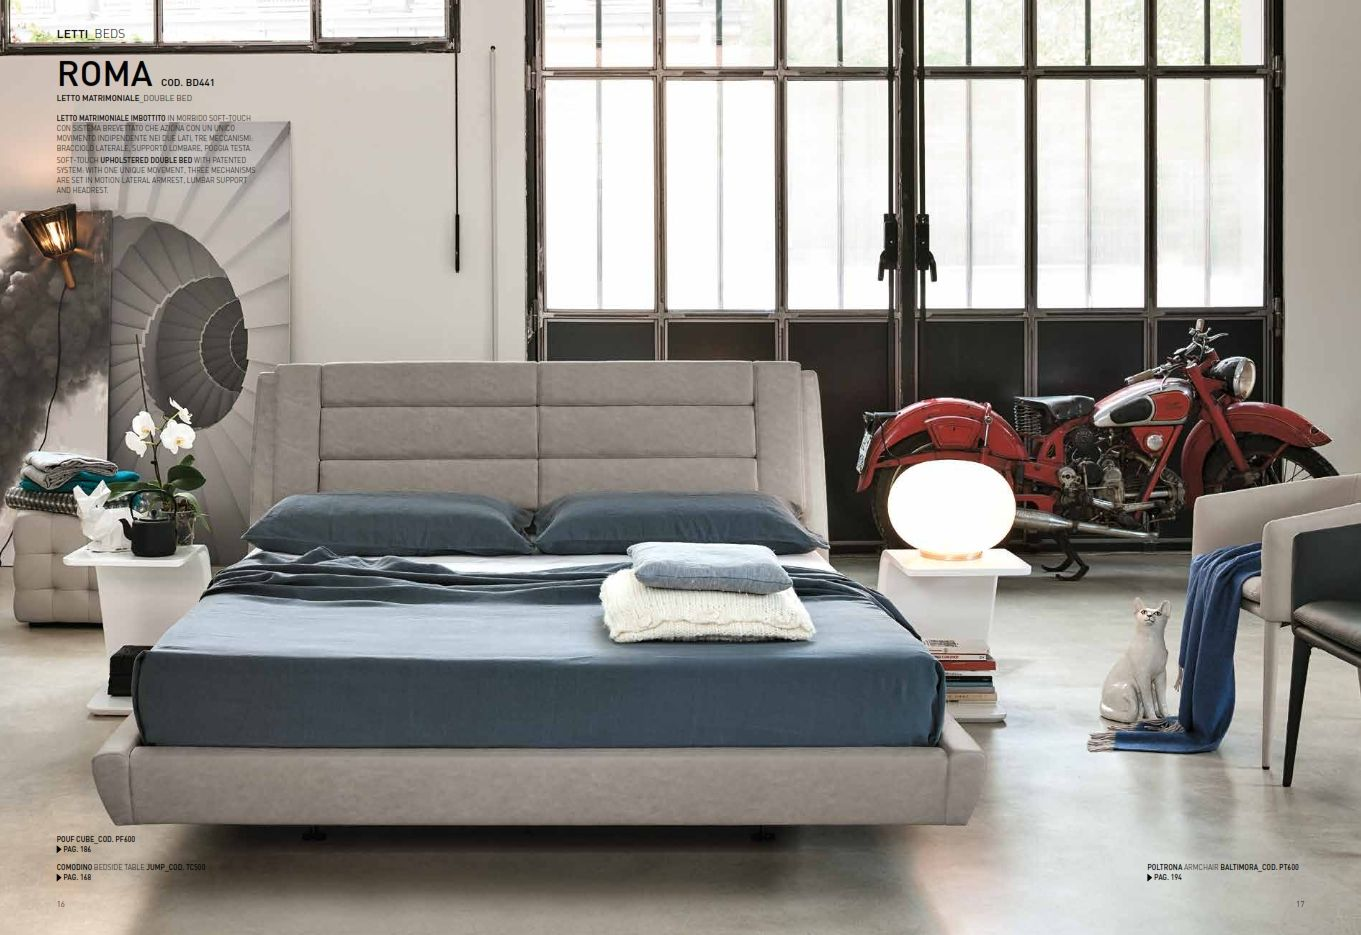 LEATHER BEDROOM - Leather Bedroom Target Point Roma SeriesFurniture ...